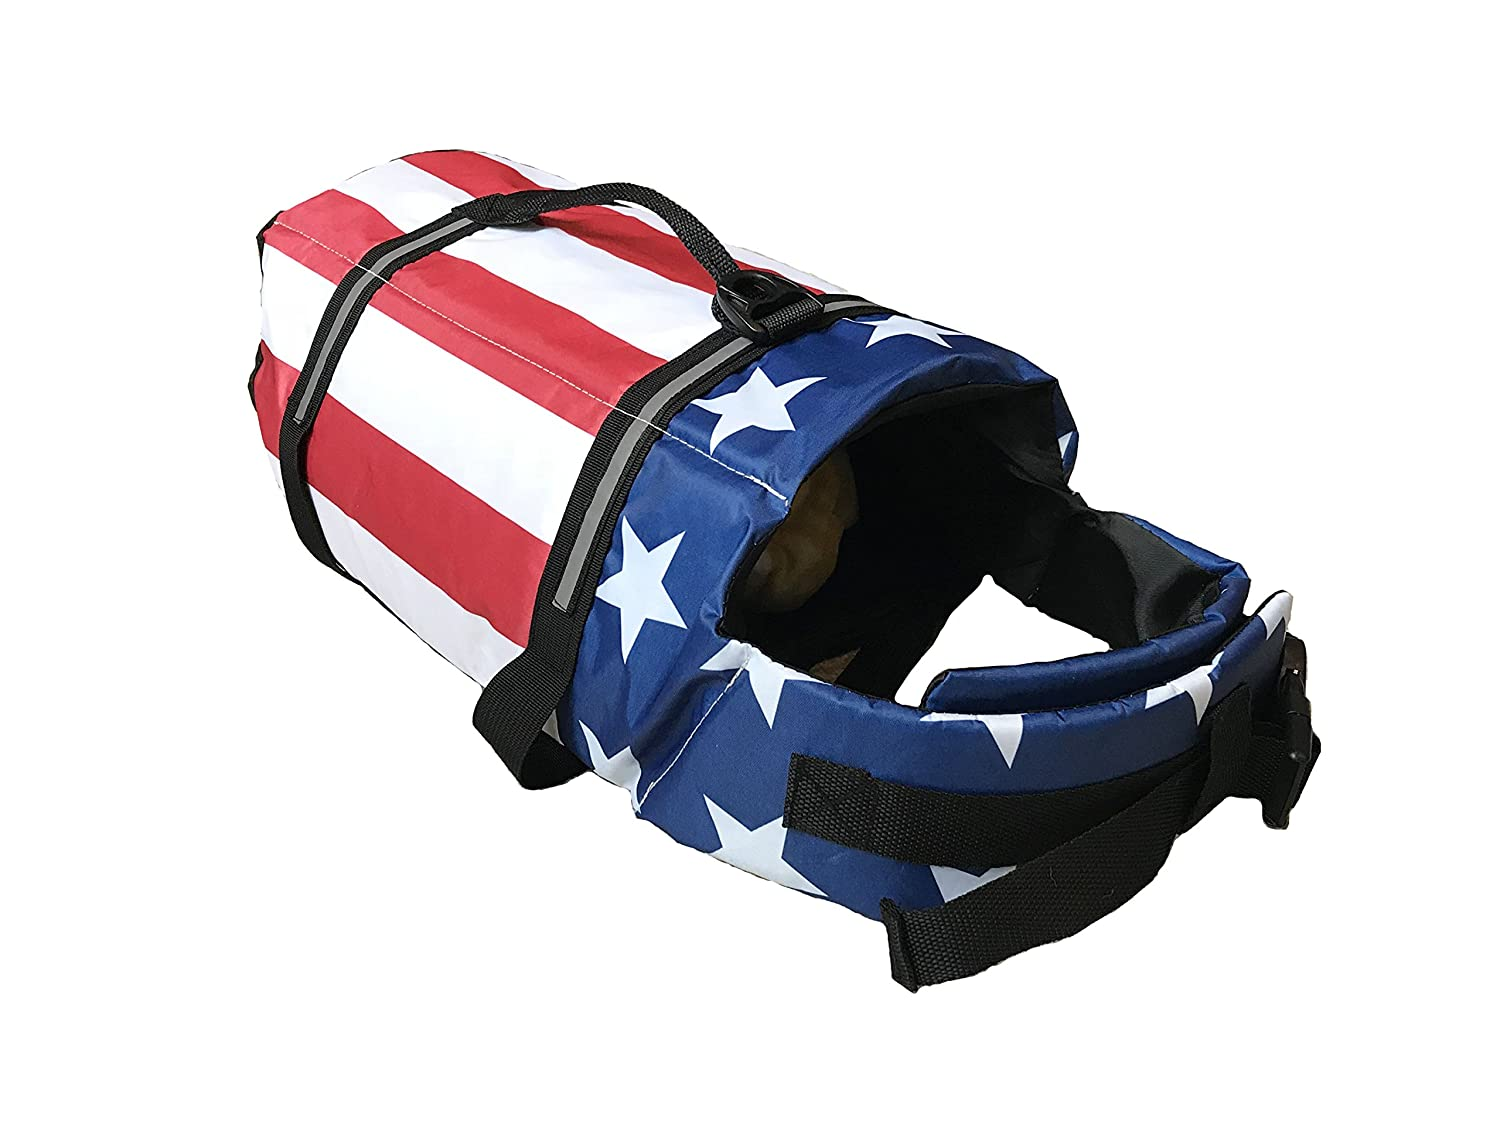 KING Pup Dog Life Jacket, American Flag Life Vest for Puppies and Dogs. Safe and Secure with Extra Padding and American Flag Design (Extra Small, Blue) best dog life vest